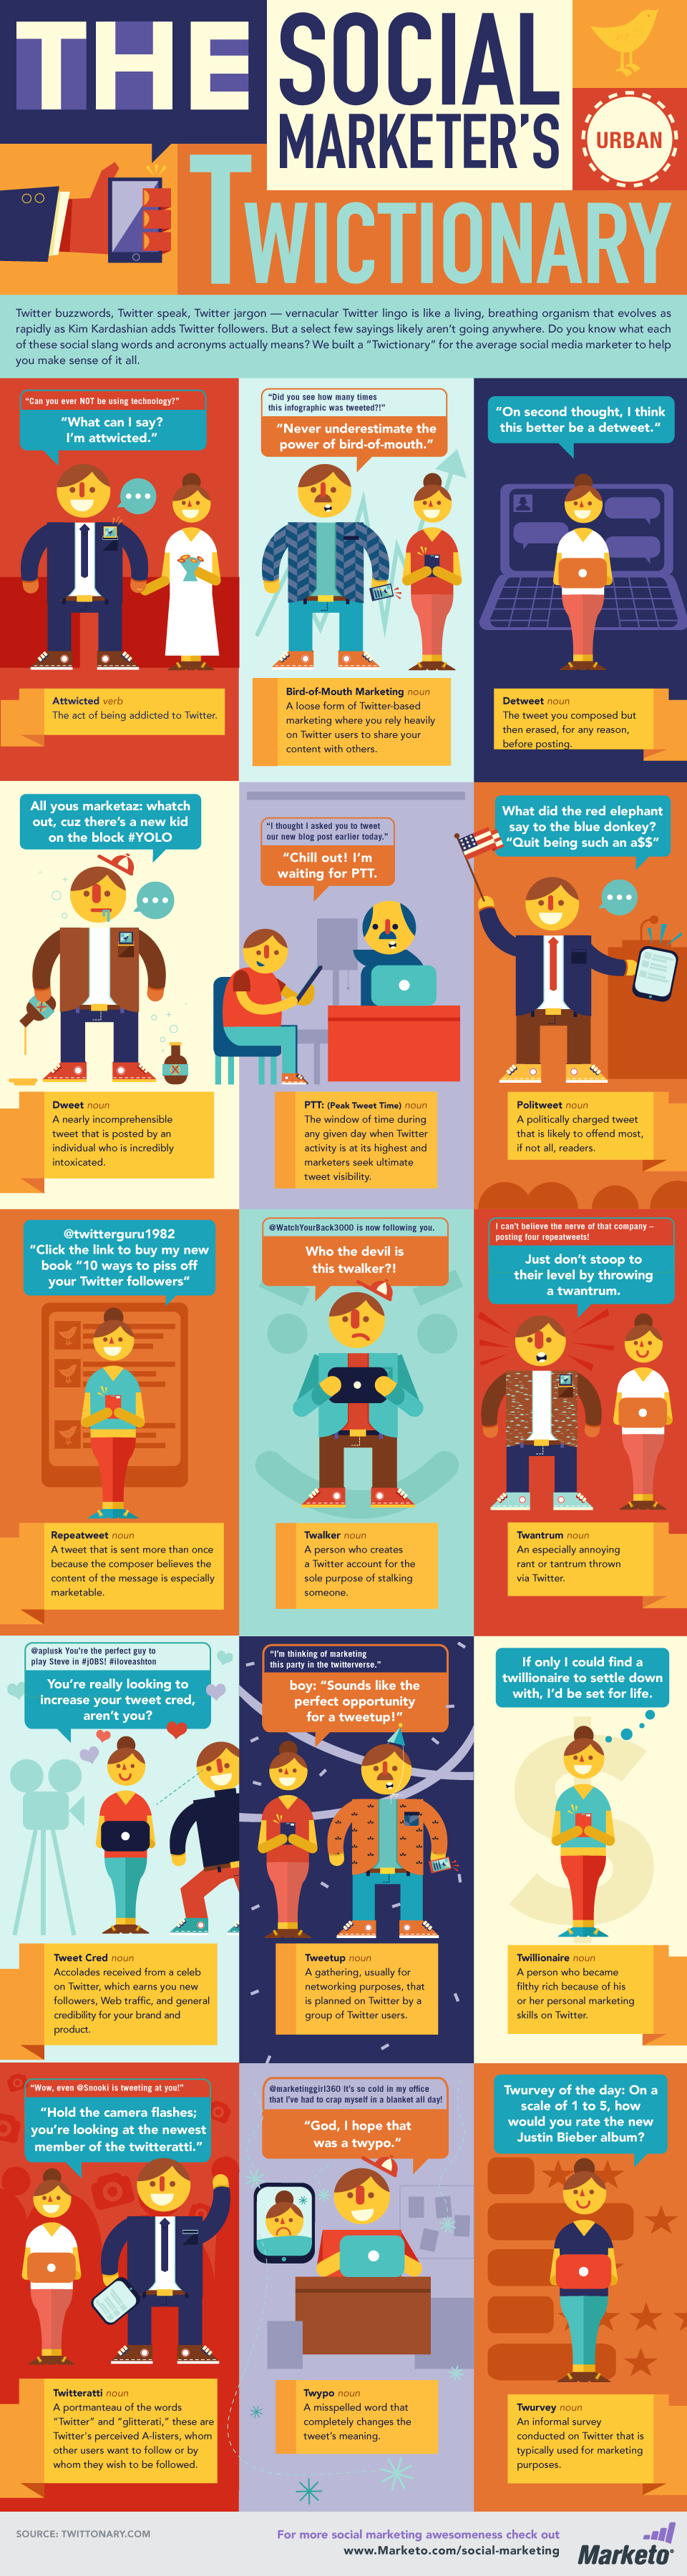 The-Social-Marketer's-Twictionary-Infographic